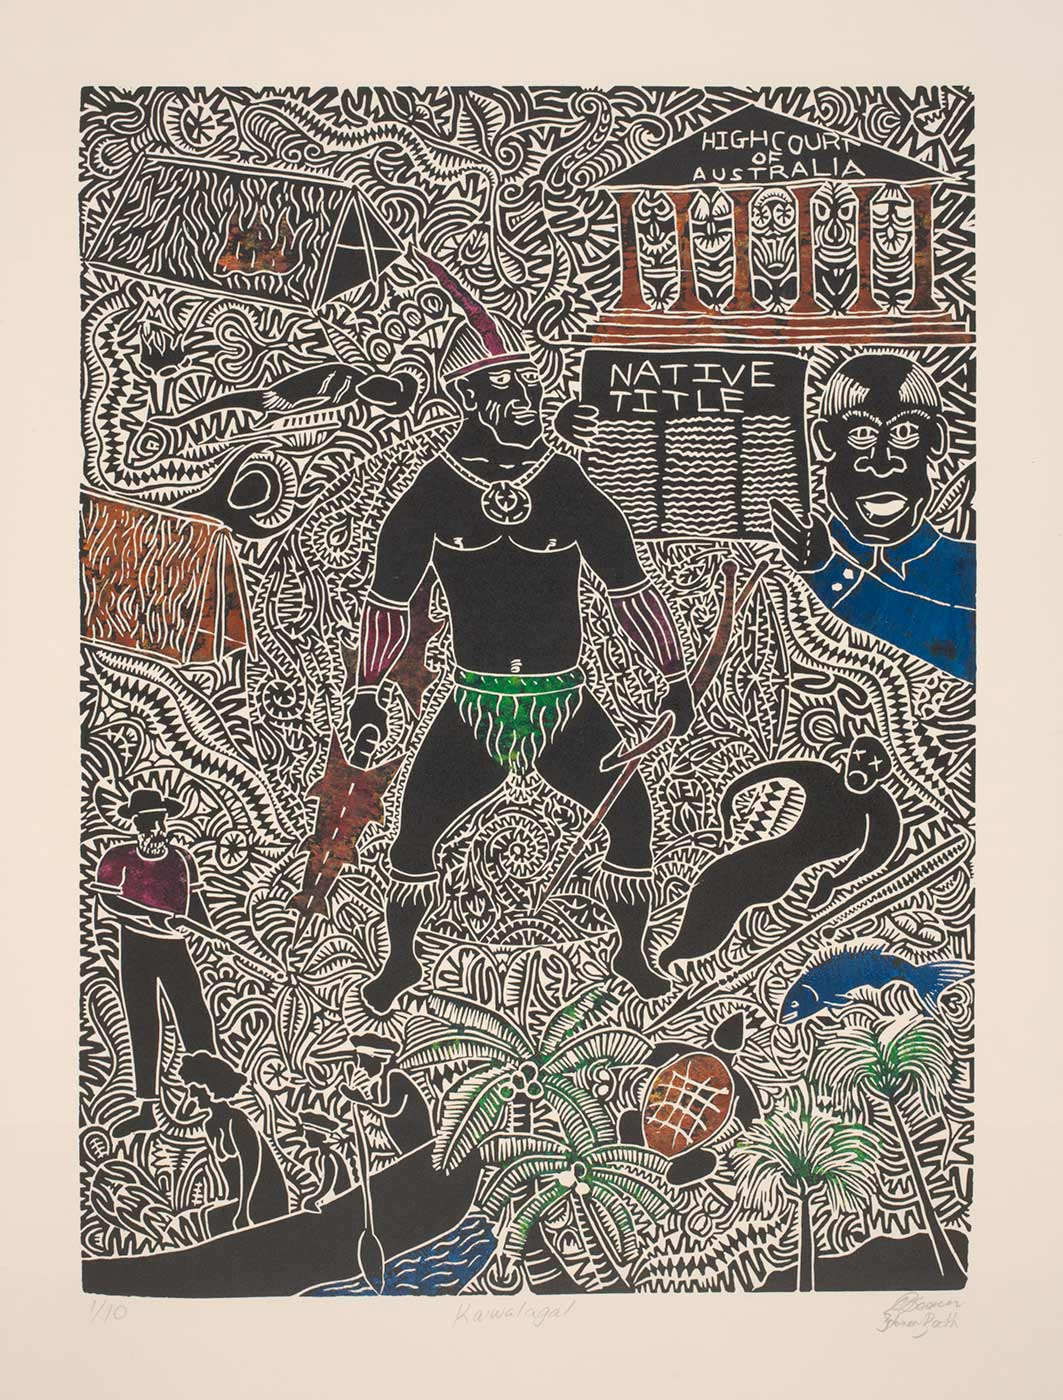 A linocut print titled 'Kaiwalagal' depicting a male figure holding weapons and wearing a headdress in the centre, surrounded by representations of the High Court of Australia, a man holding a Native Title document, dwellings, animals, a man holding a gun, and two people in a canoe. The artwork is printed in black ink on cream coloured paper, with some sections coloured, particularly a shirt, fish and water coloured blue; a shirt, armbands and headdress coloured pink; plants and clothing coloured green; and a turtleshell, weapons, and sections of dwellings coloured brown. Annotations pencilled below the imprint read '1/10 Kaiwalagal DBosun / Solomon Booth [signatures]'.